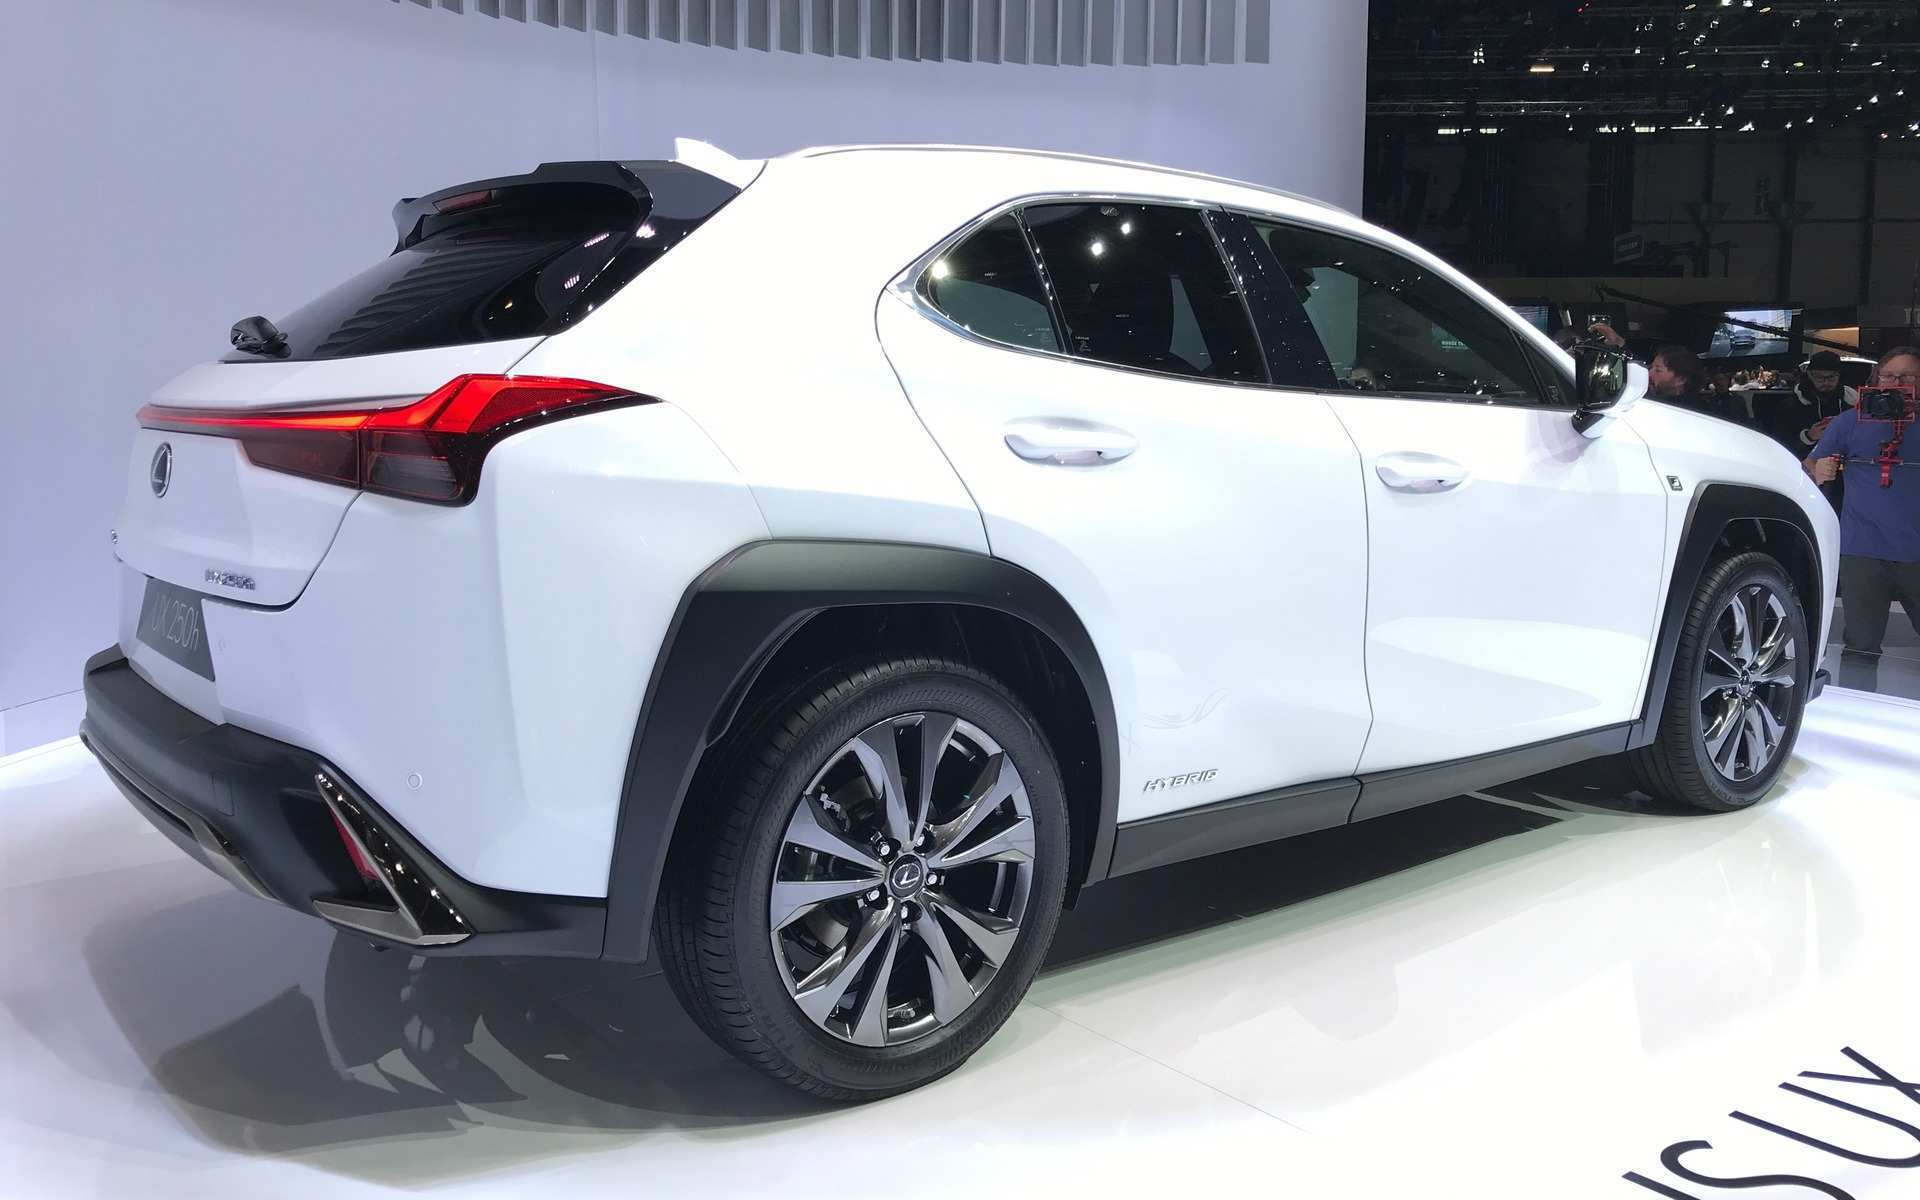 38 Concept of 2019 Lexus Ux Canada Exterior and Interior for 2019 Lexus Ux Canada